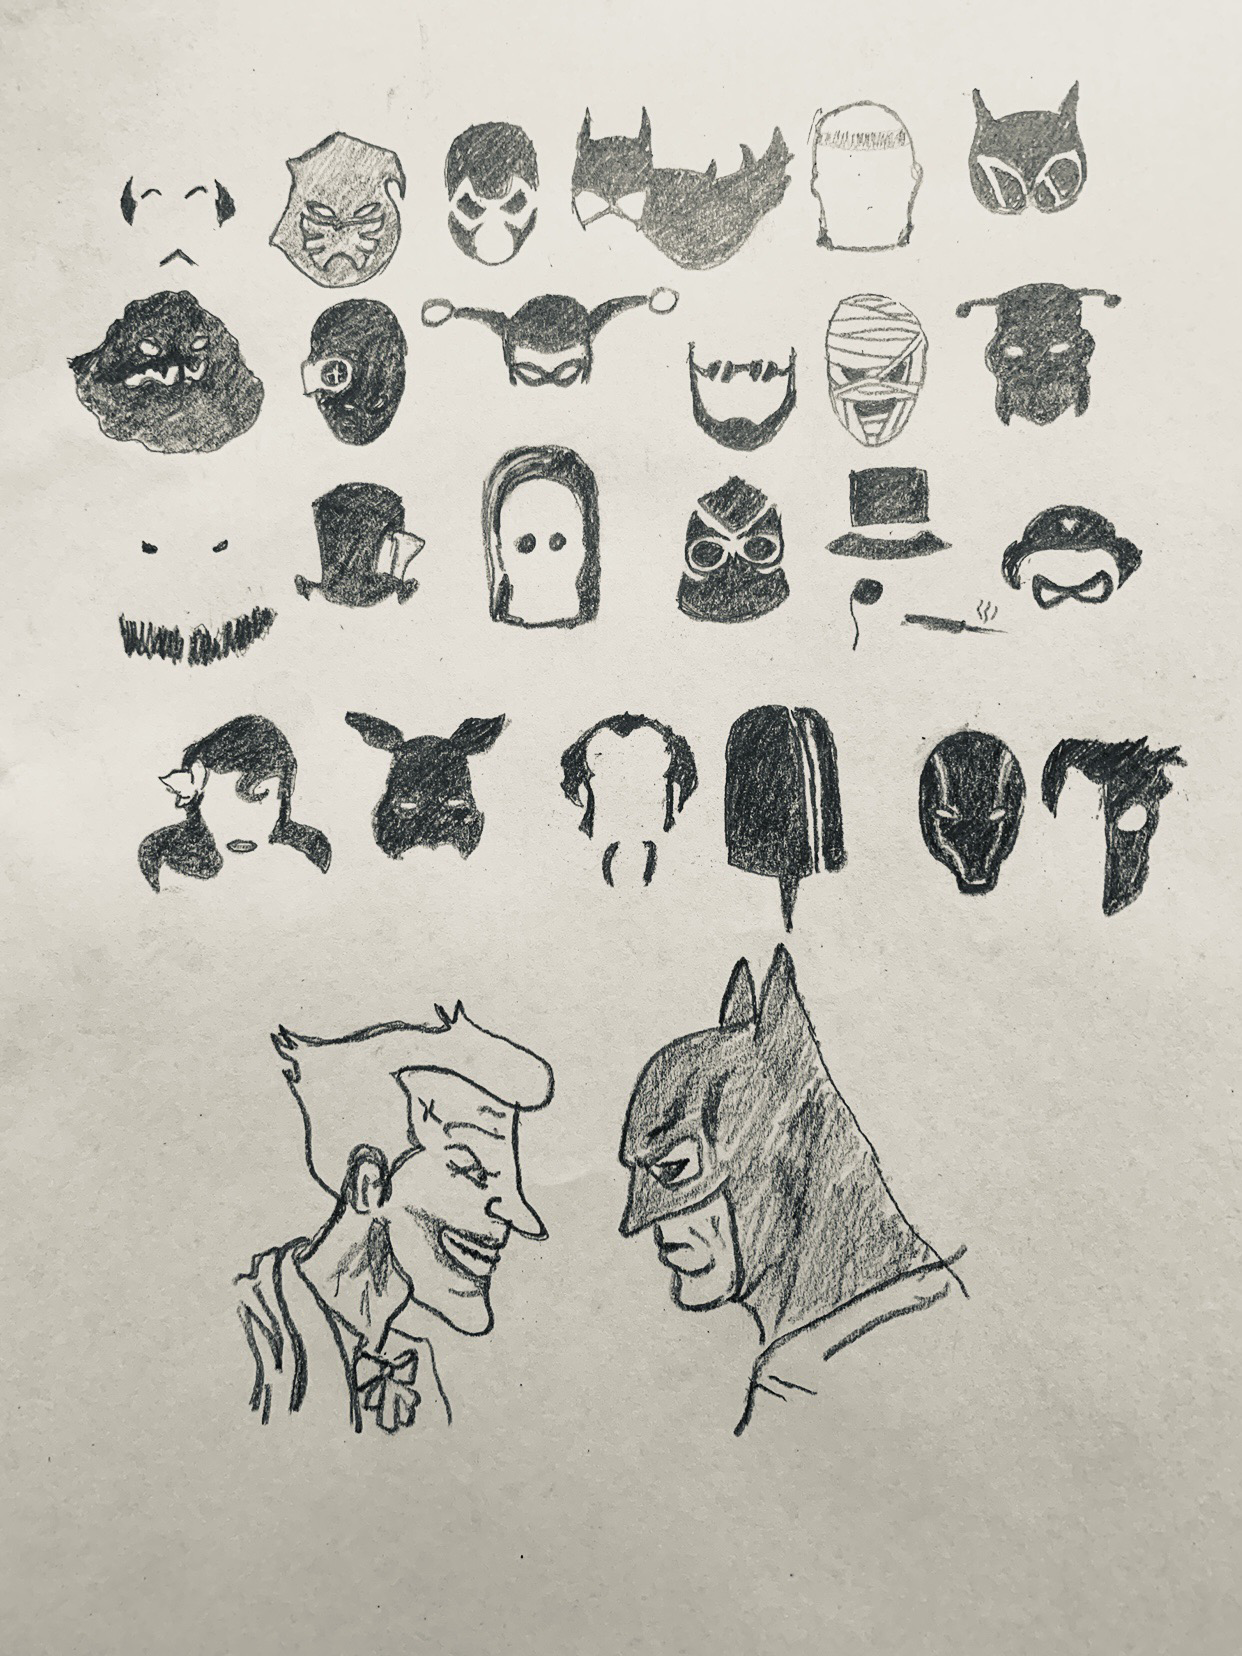 I drew the sketch yesterday 🦇, can you name each one of them